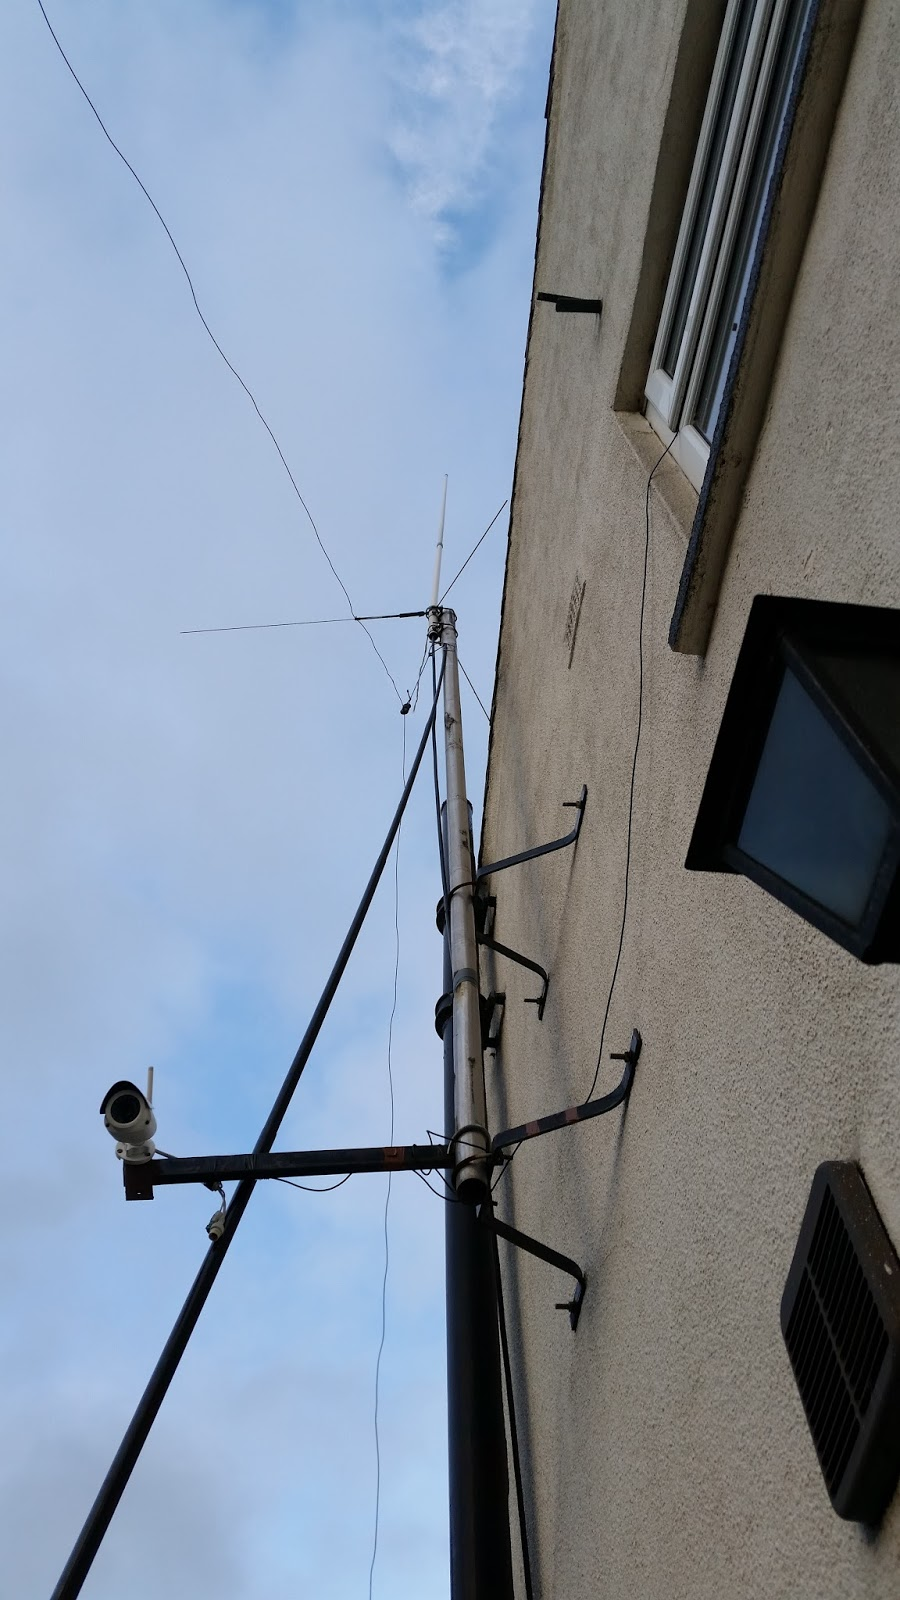 How Can Someone Make a Homemade AM Radio Antenna